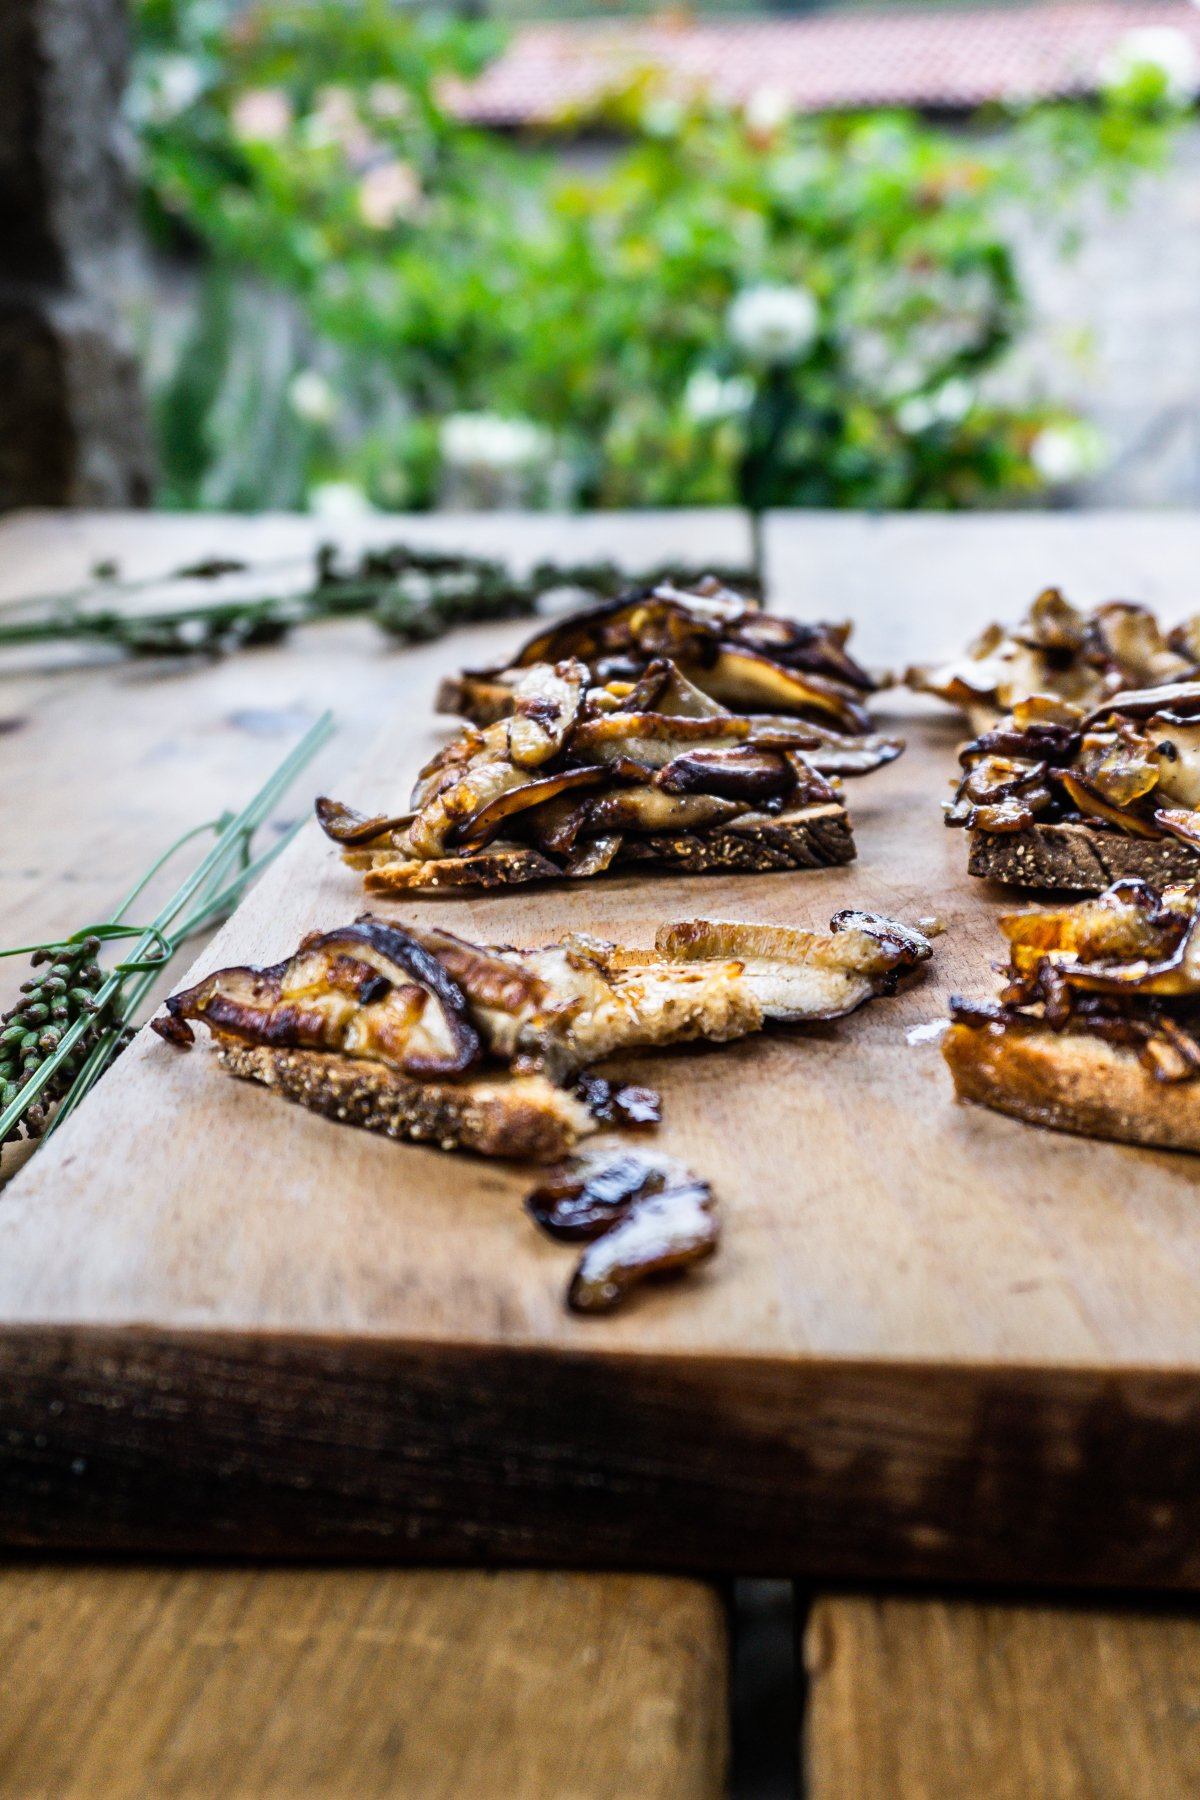 Rustic Mushroom Bruschetta on a wooden chopping board and table with one piece being bitten off and in focus